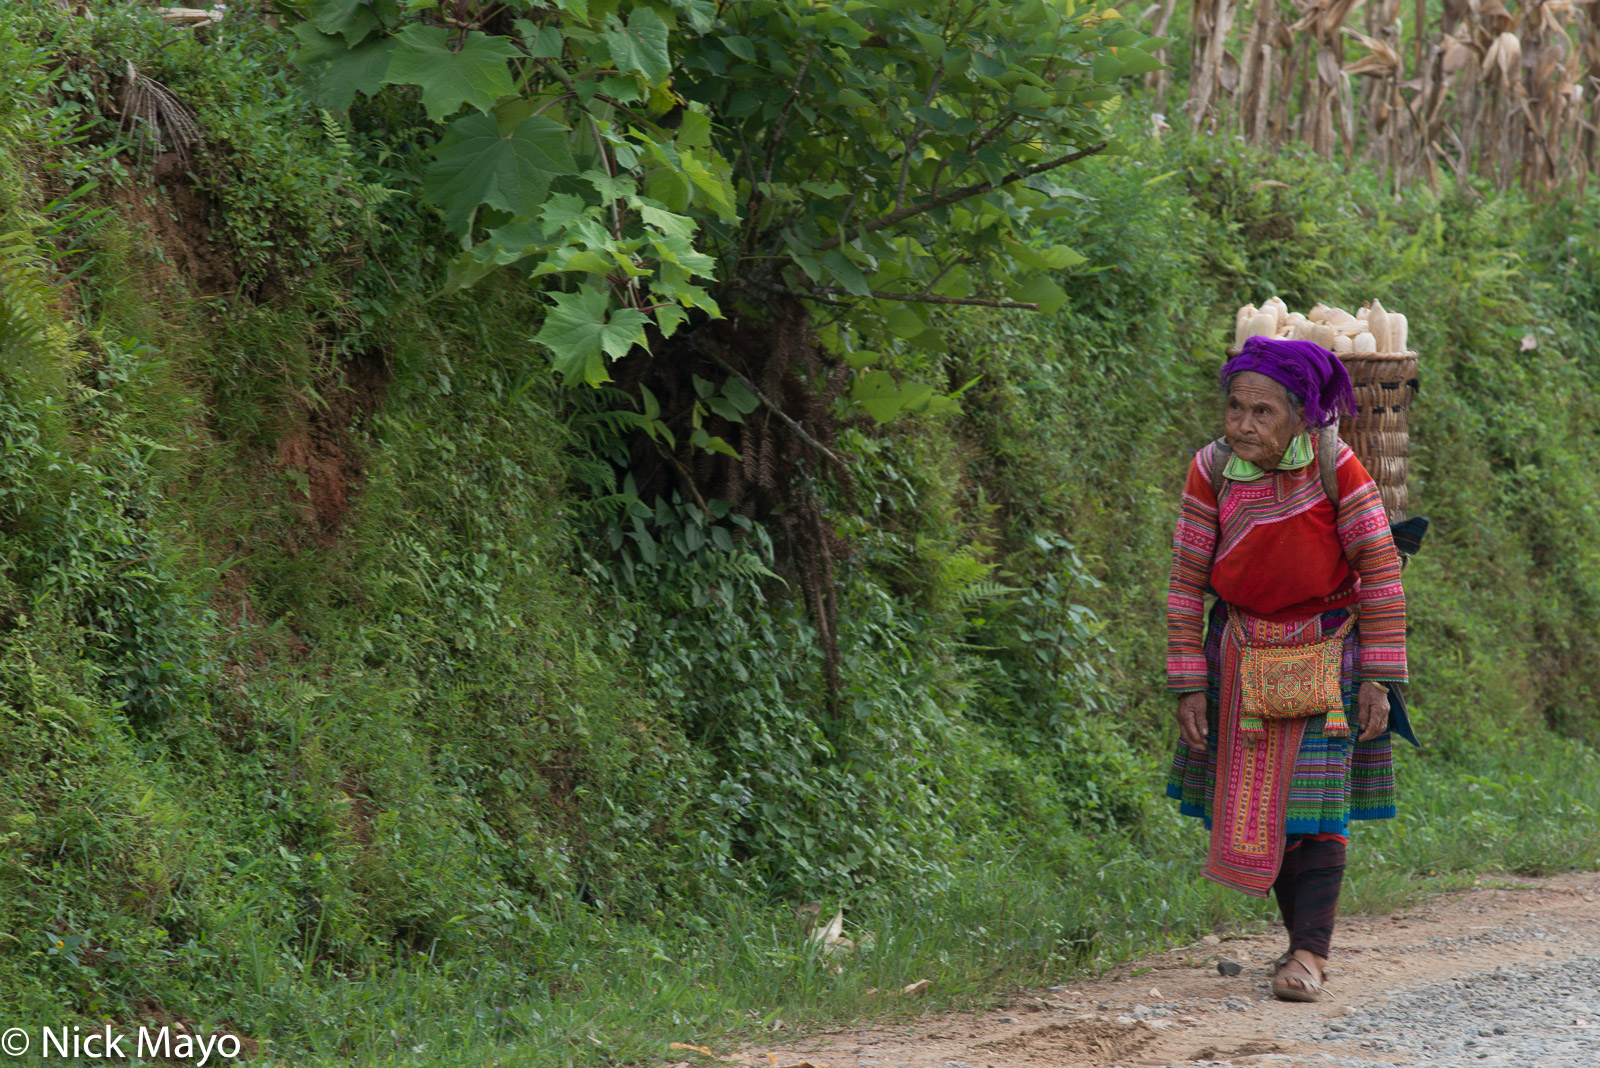 A Hmong woman from Nam Ma carrying harvested corn home in a backstrap basket.